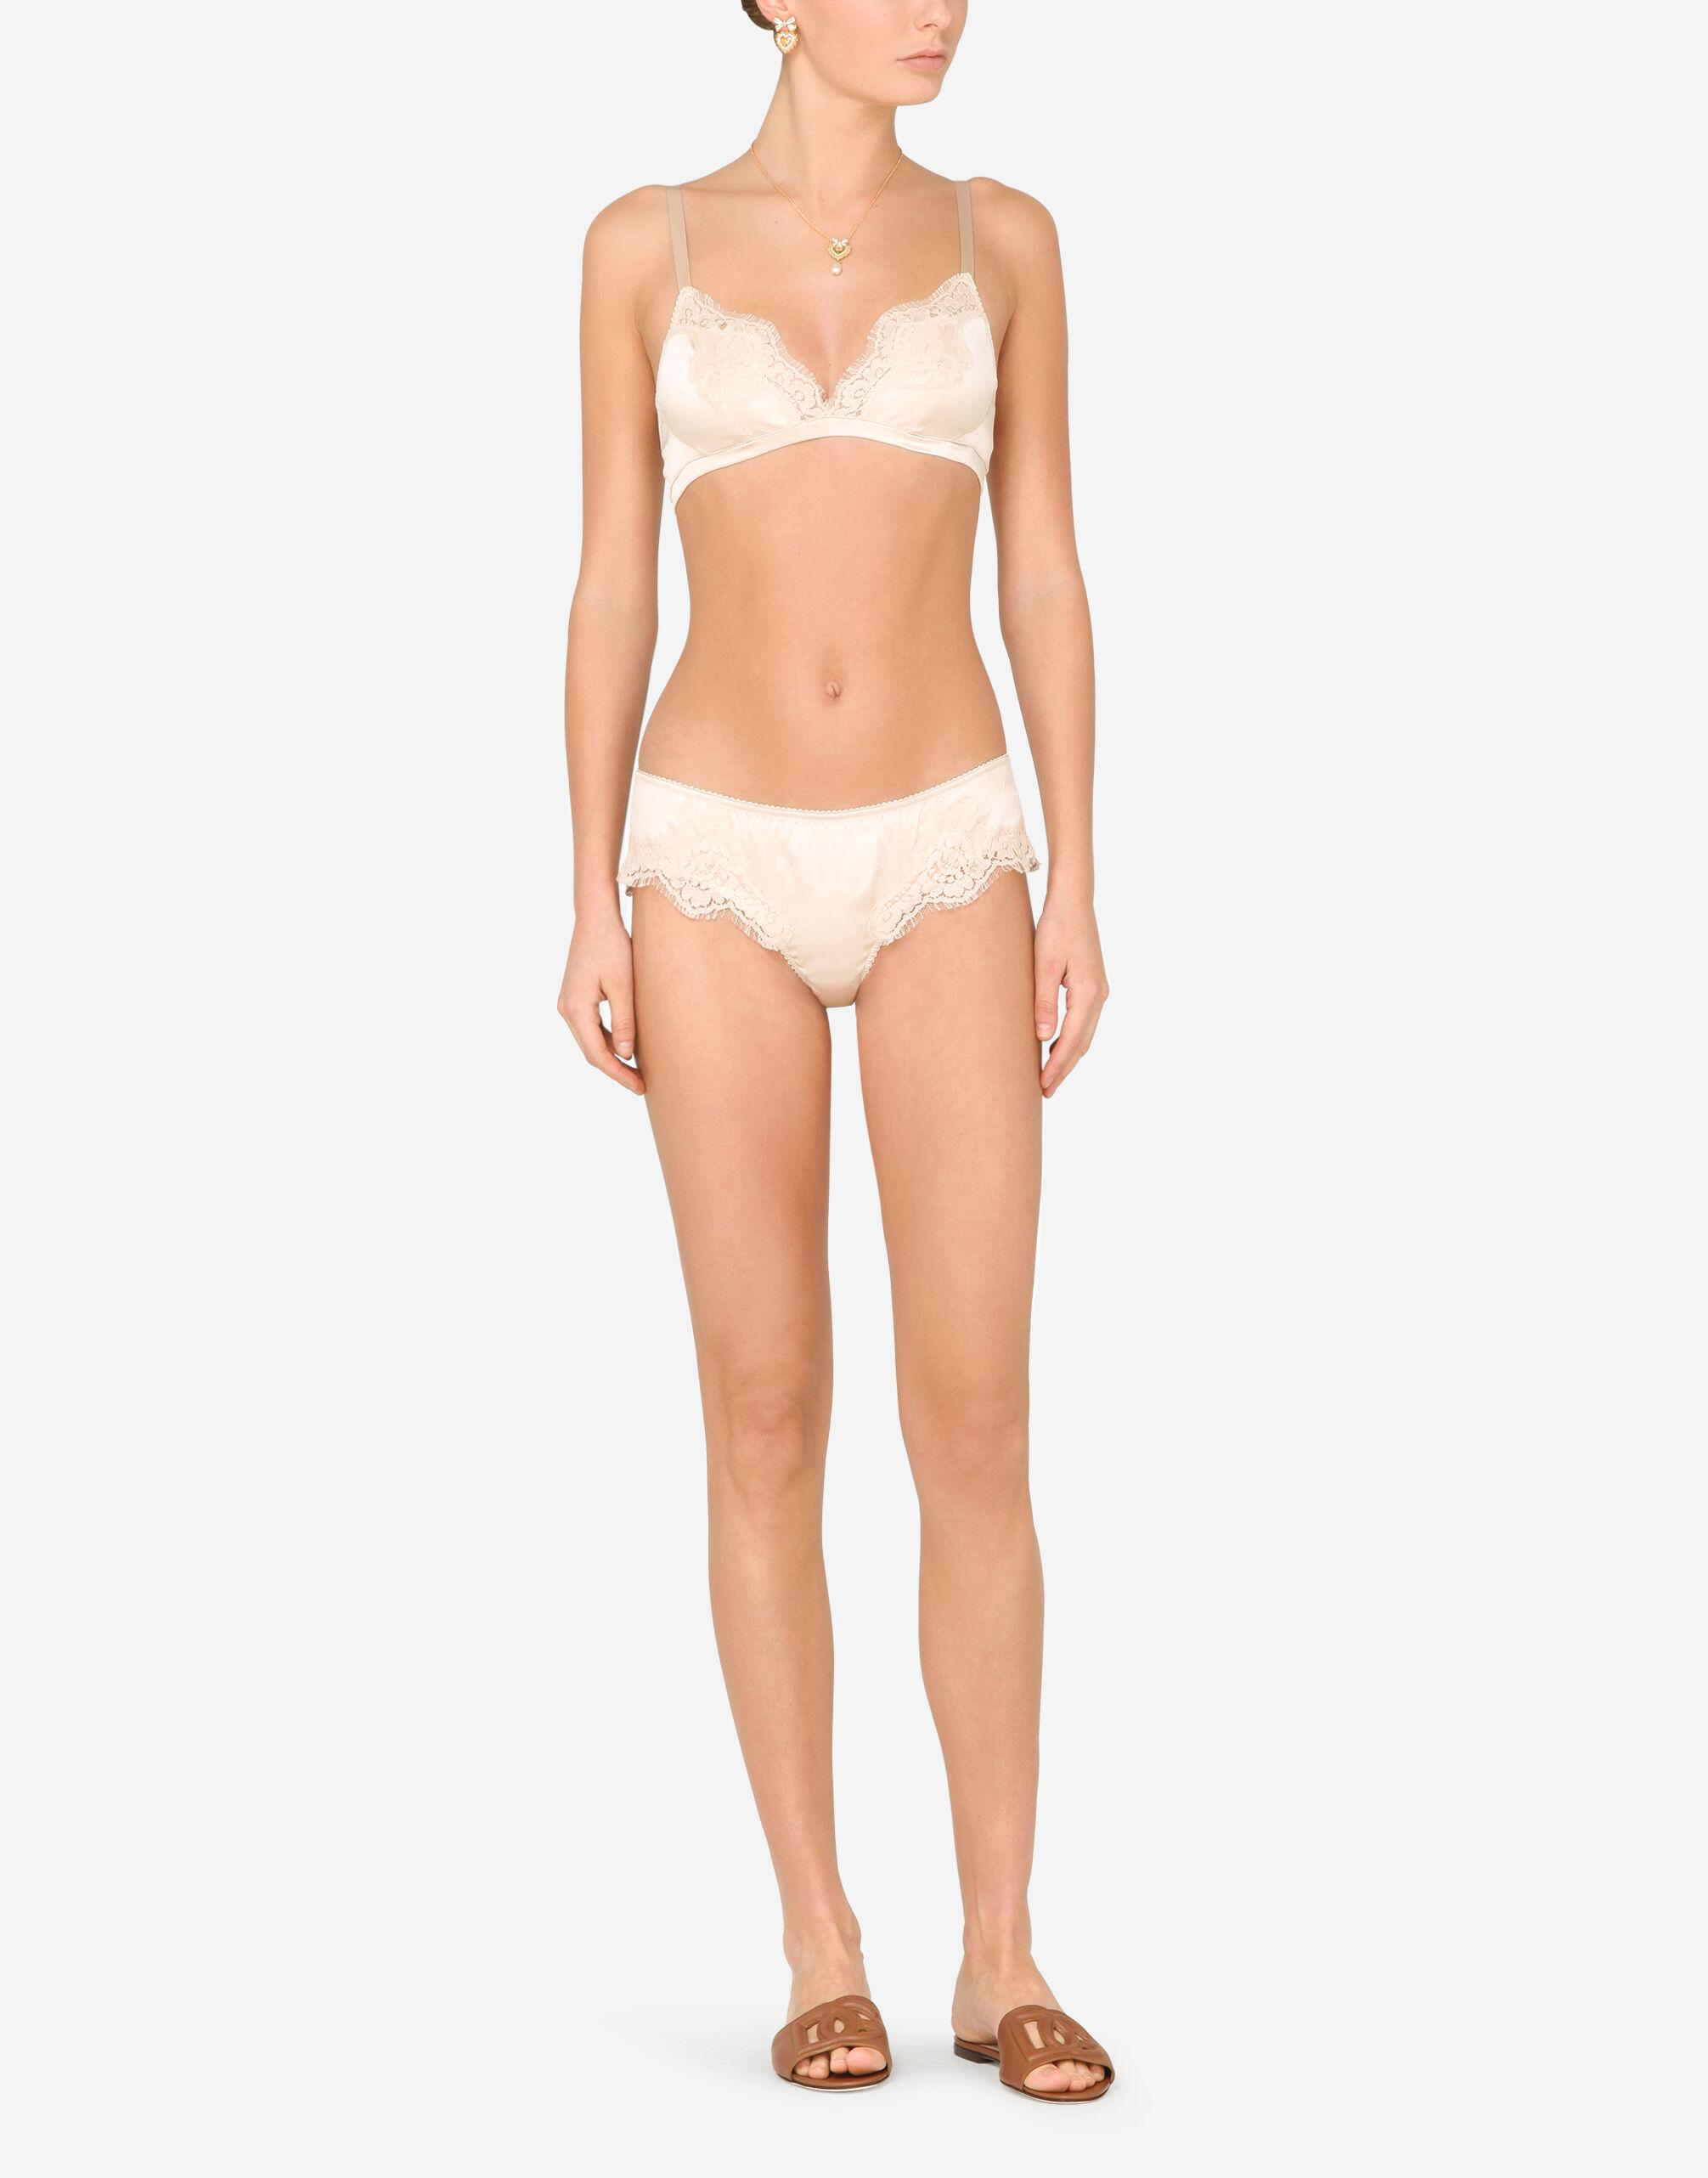 Satin briefs with lace detailing